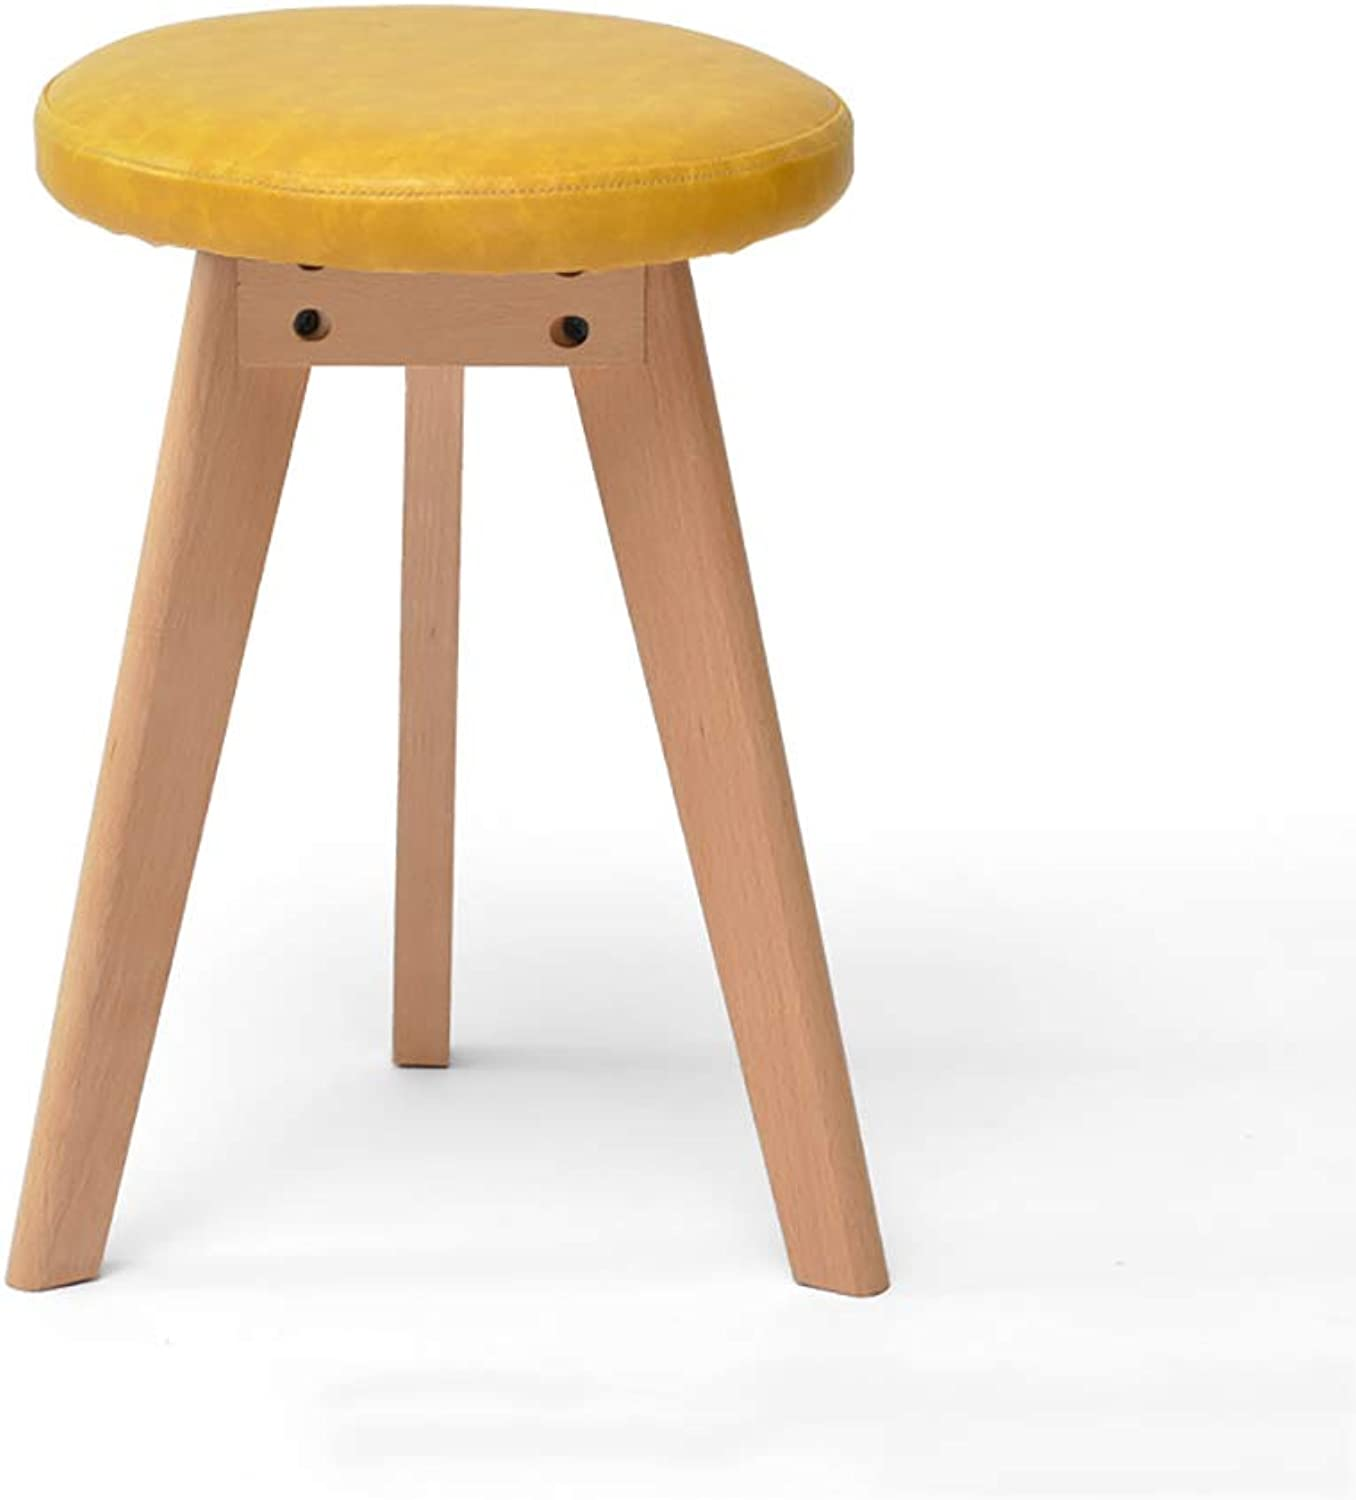 Solid Wood Stool Fabric Makeup Stool Removable and Washable Durable Soft Stool Household Table Stool Small Bench (40  40  45CM)